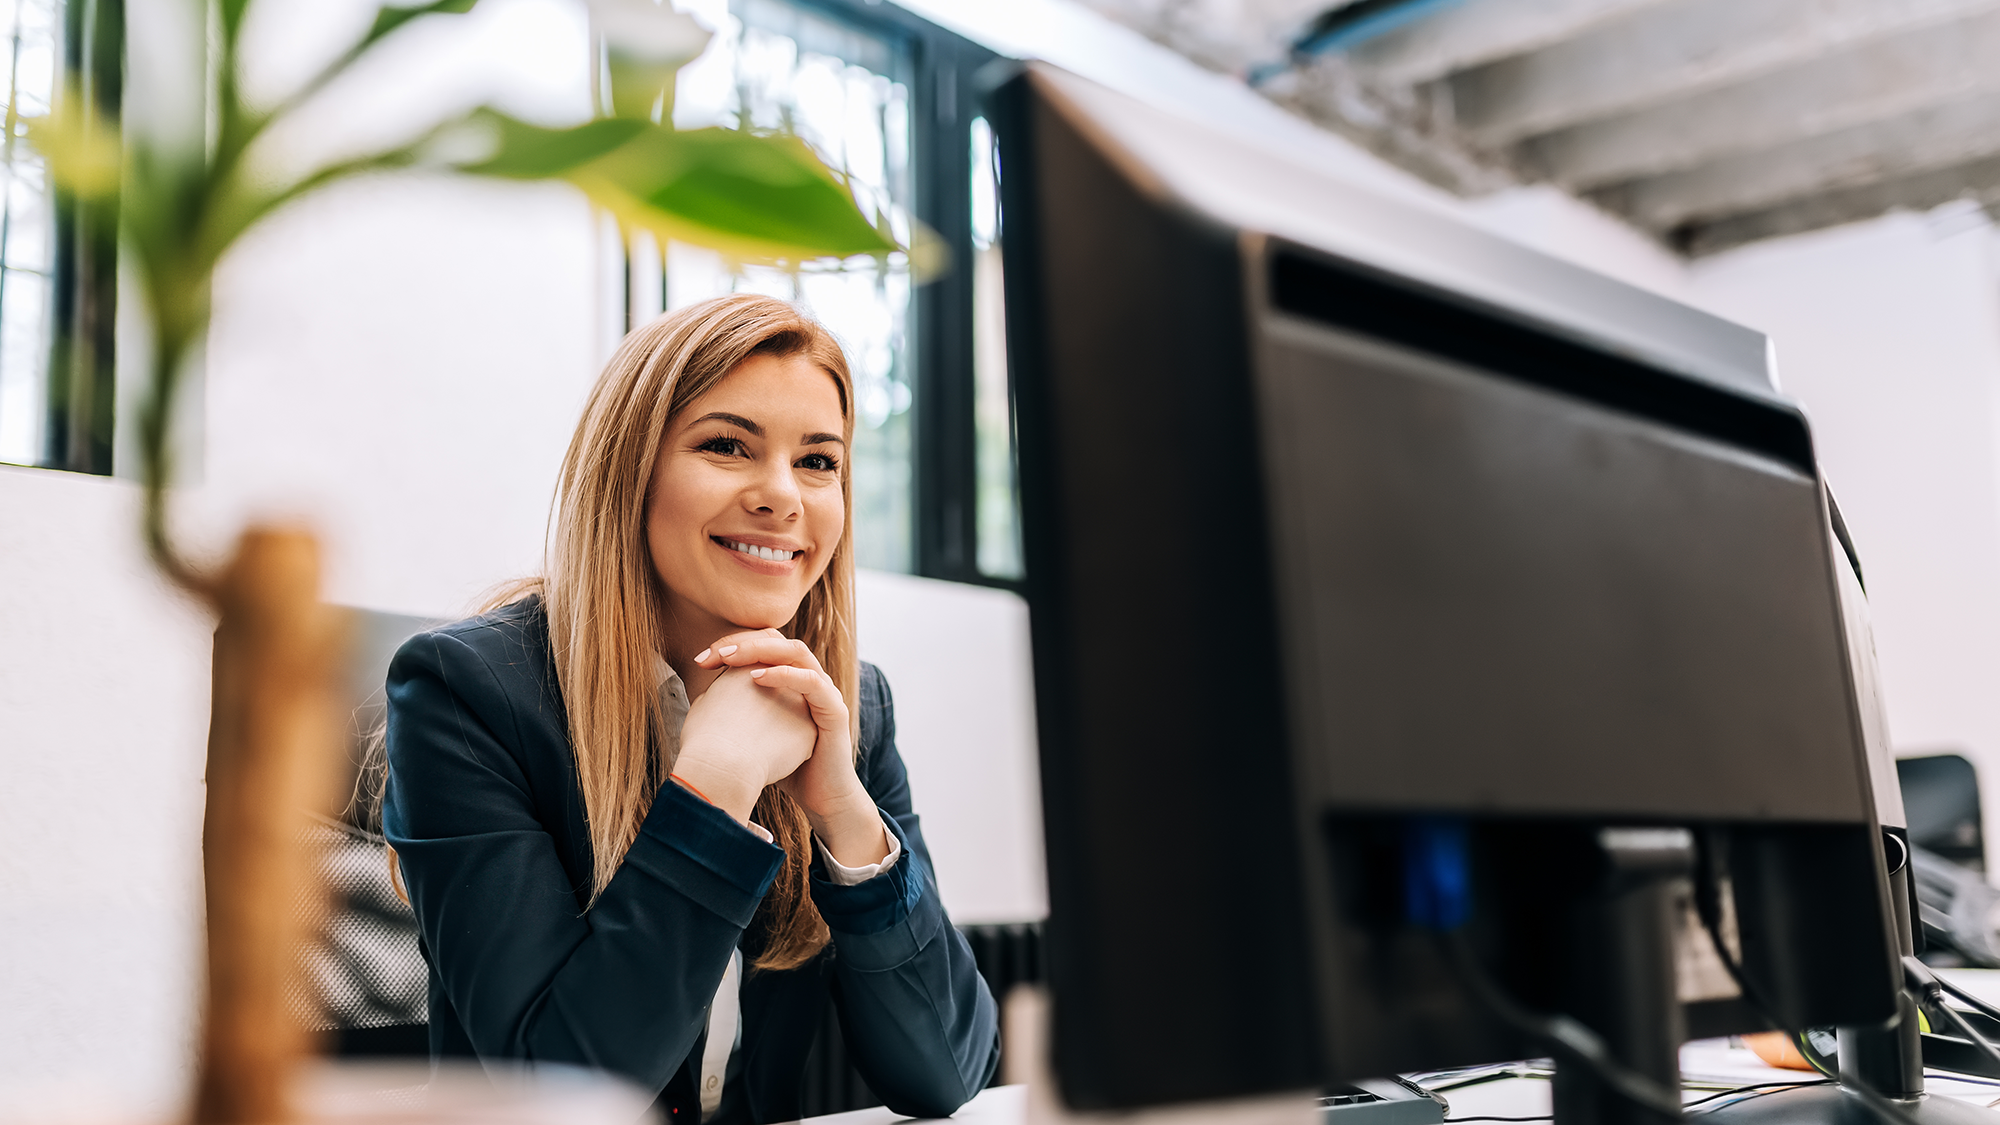 Smiling businesswoman in front of desktop computer